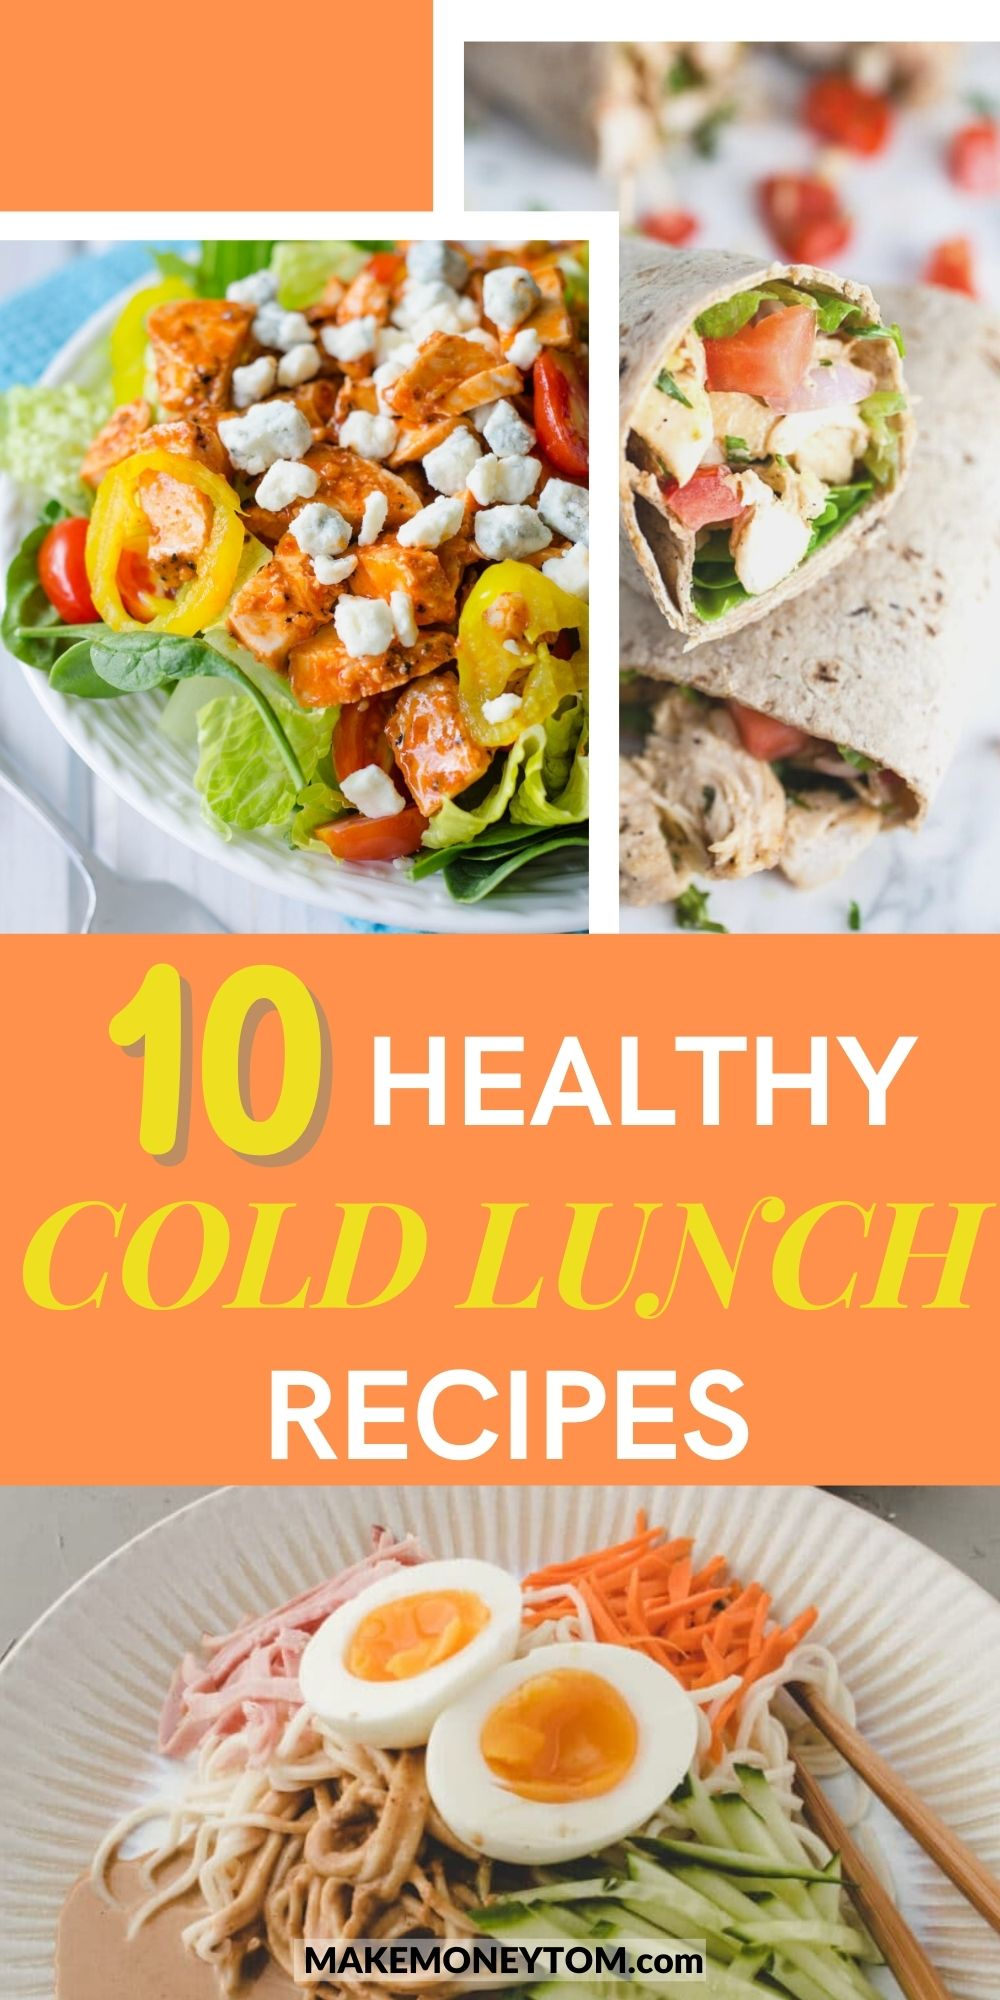 10 Cold Lunch Recipes - Healthy Recipes